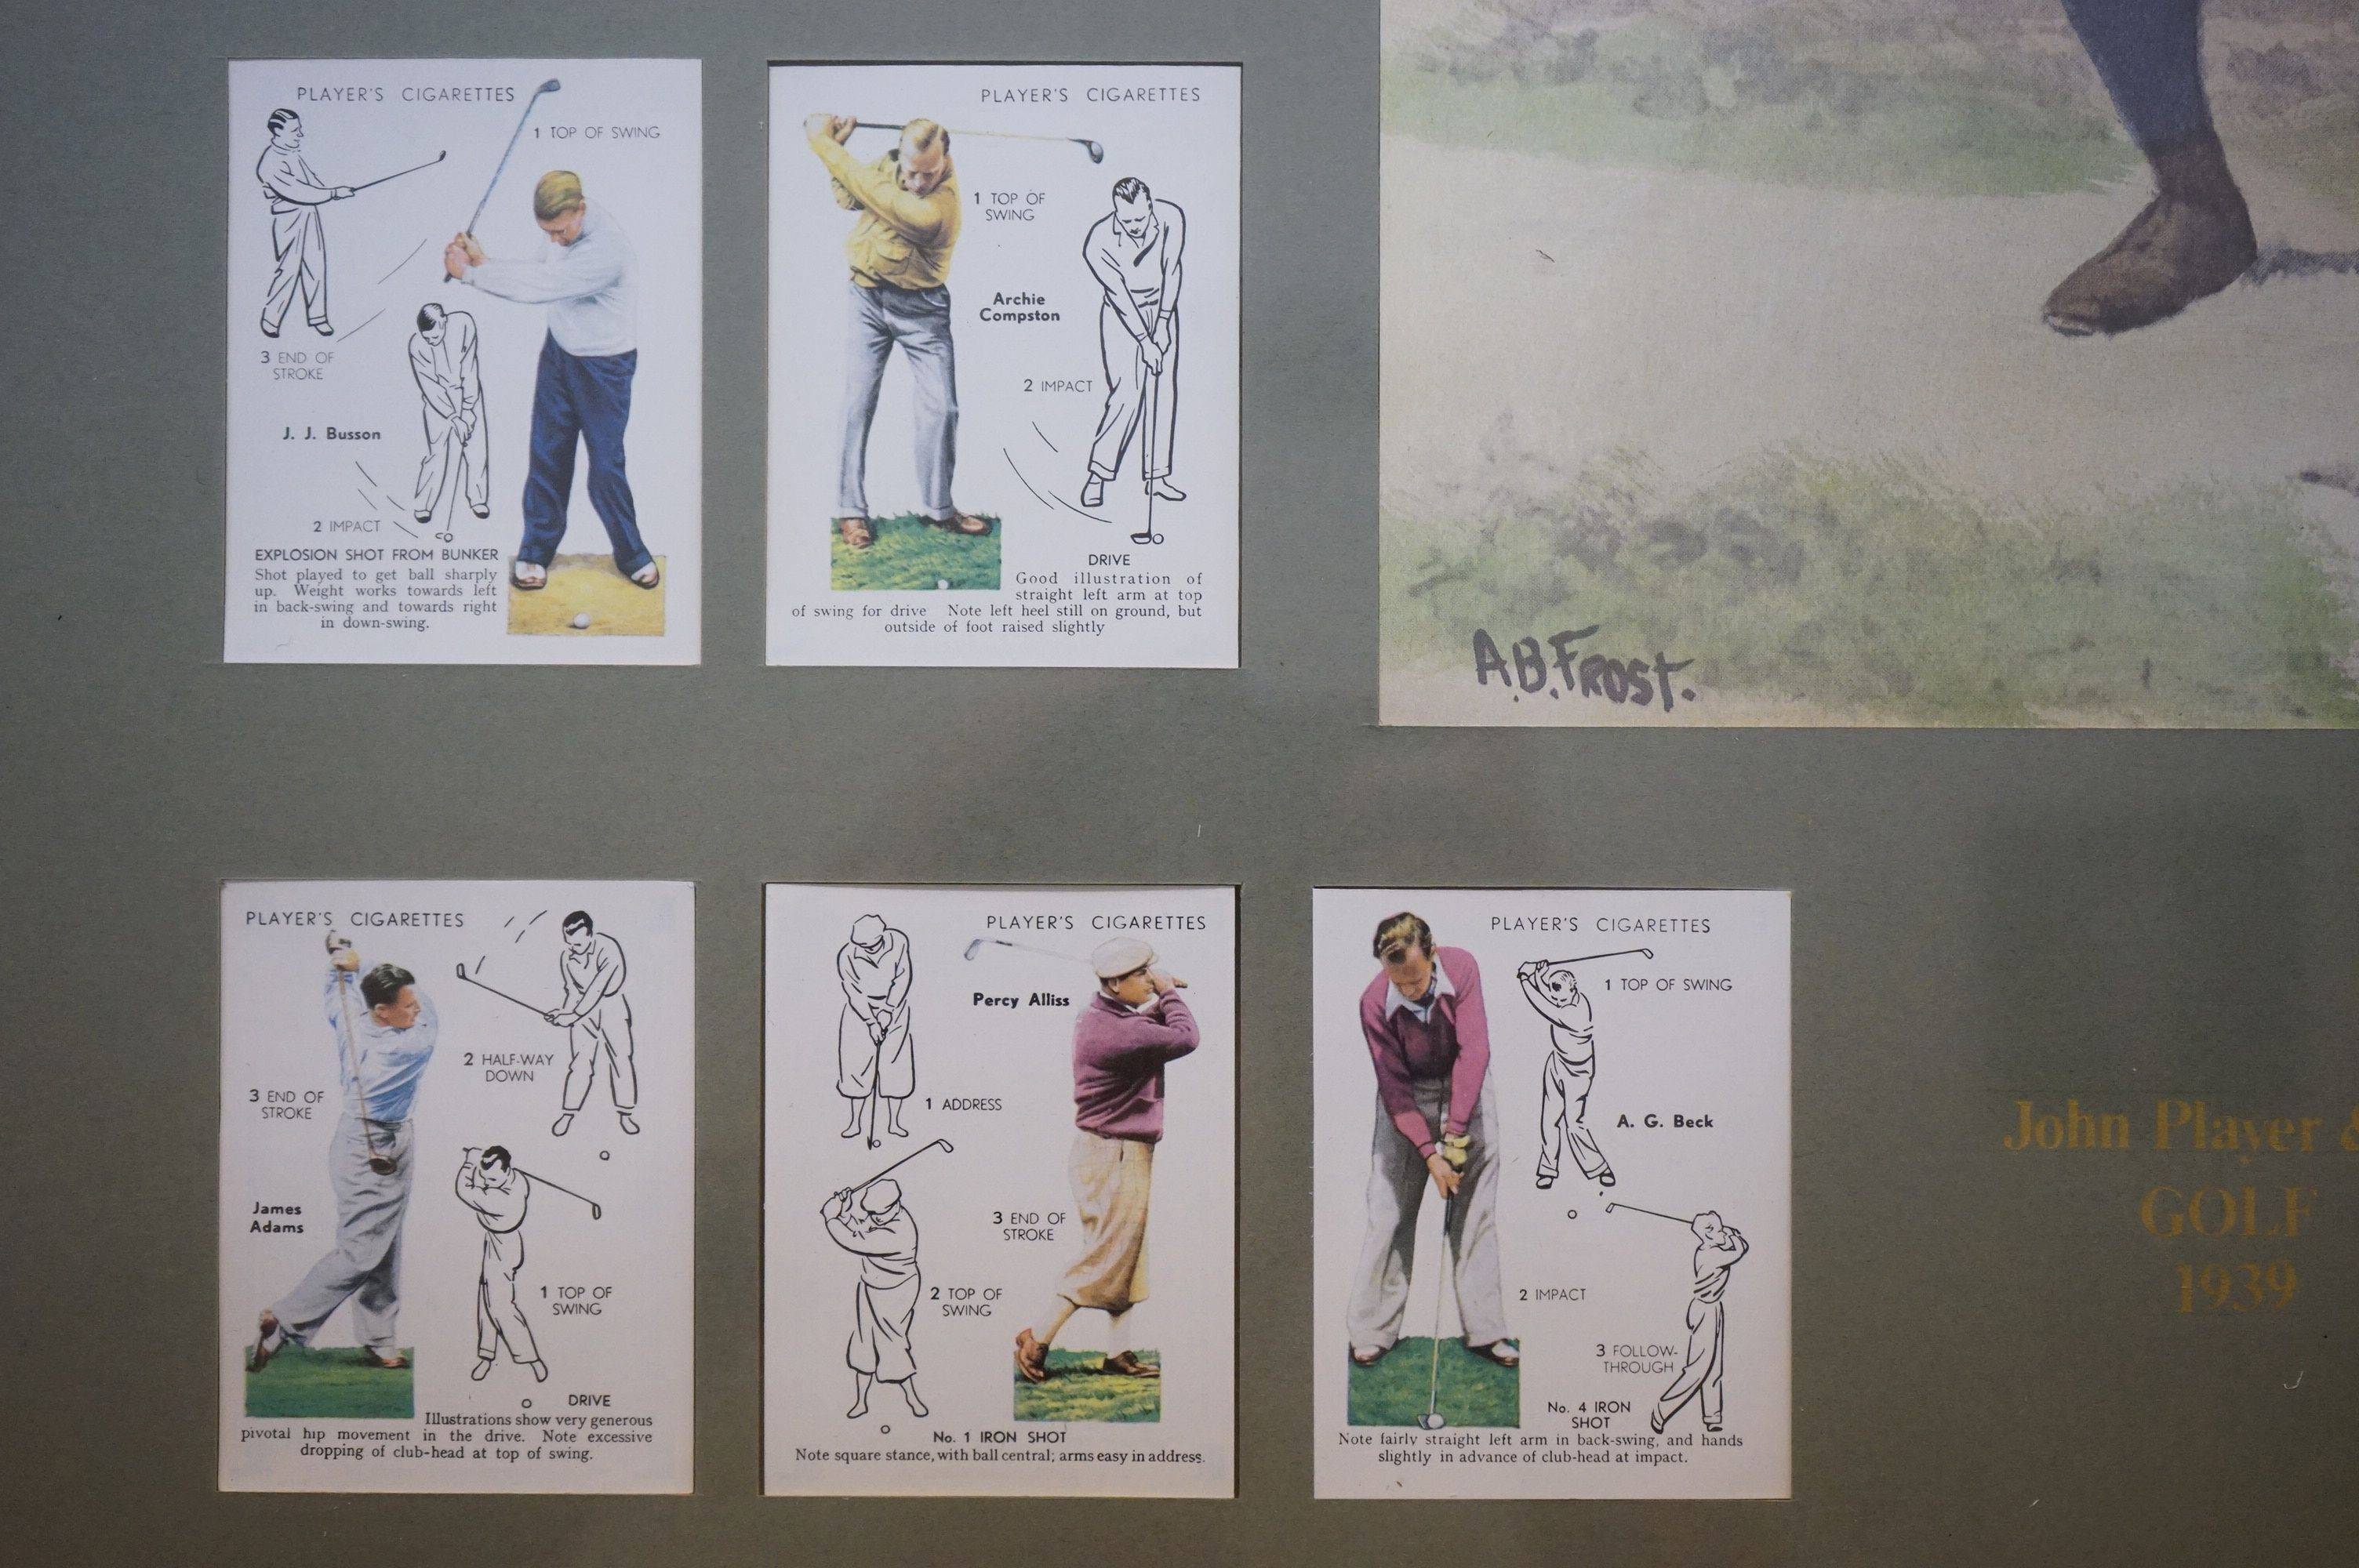 Golf - a John Player commemorative picture portraying famous golfers and their play methods - Image 3 of 6